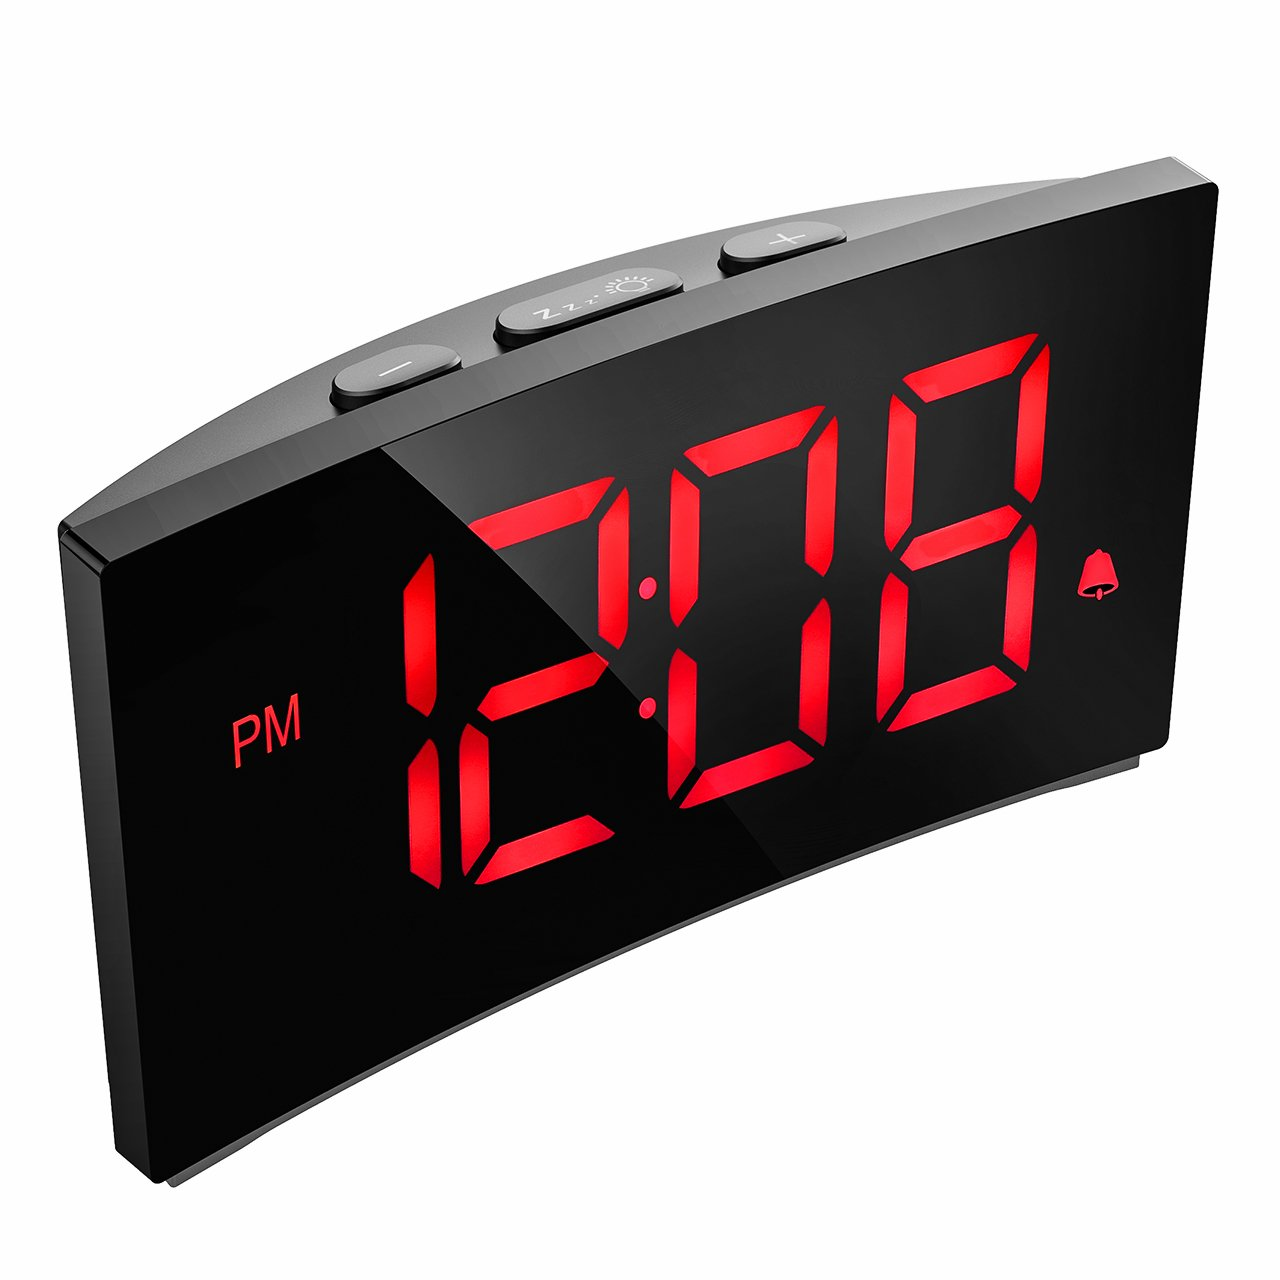 Alarm Clocks, PICTEK Digital Alarm Clock with 5-inch Dimmable LED Curved Screen, Kids Electronics Clock with Snooze Function, 12/24 Hour, USB Time Clock for Bedrooms Livingroom Office Desk (NO AC Adapter)